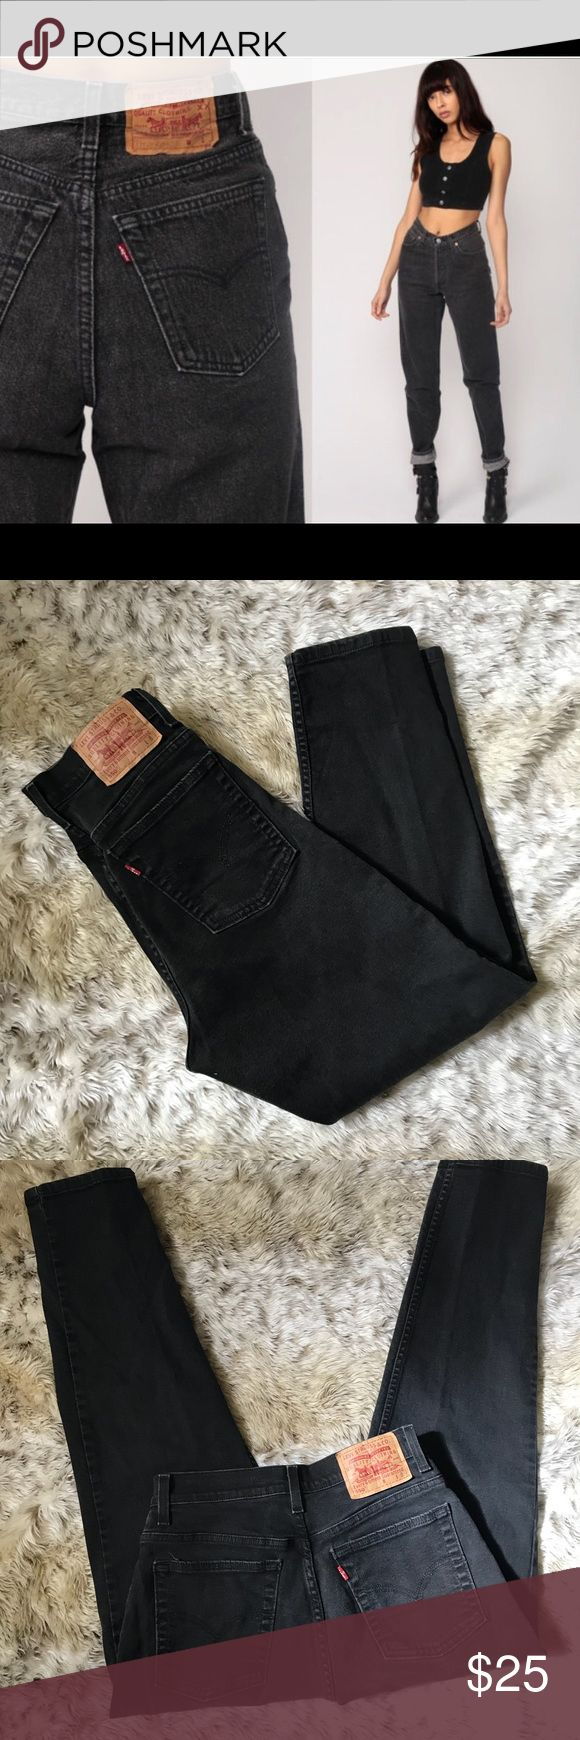 """1980s Vintage Levi's Mom Jeans Size 12 Brand- Levi's  Flawless and looks basically new esp to be vintage- 1980s high waisted mom jeans- Levi's size 12- back tab has NO fading- Levi's 550- inseam 31""""  Waist- 14""""  Rise- 10"""" From hip to hip straight across 19"""" red tab  Please keep in mind vintage runs small so check measurements- price is firm as these are mint condition and listed very cheap Levi's Jeans"""